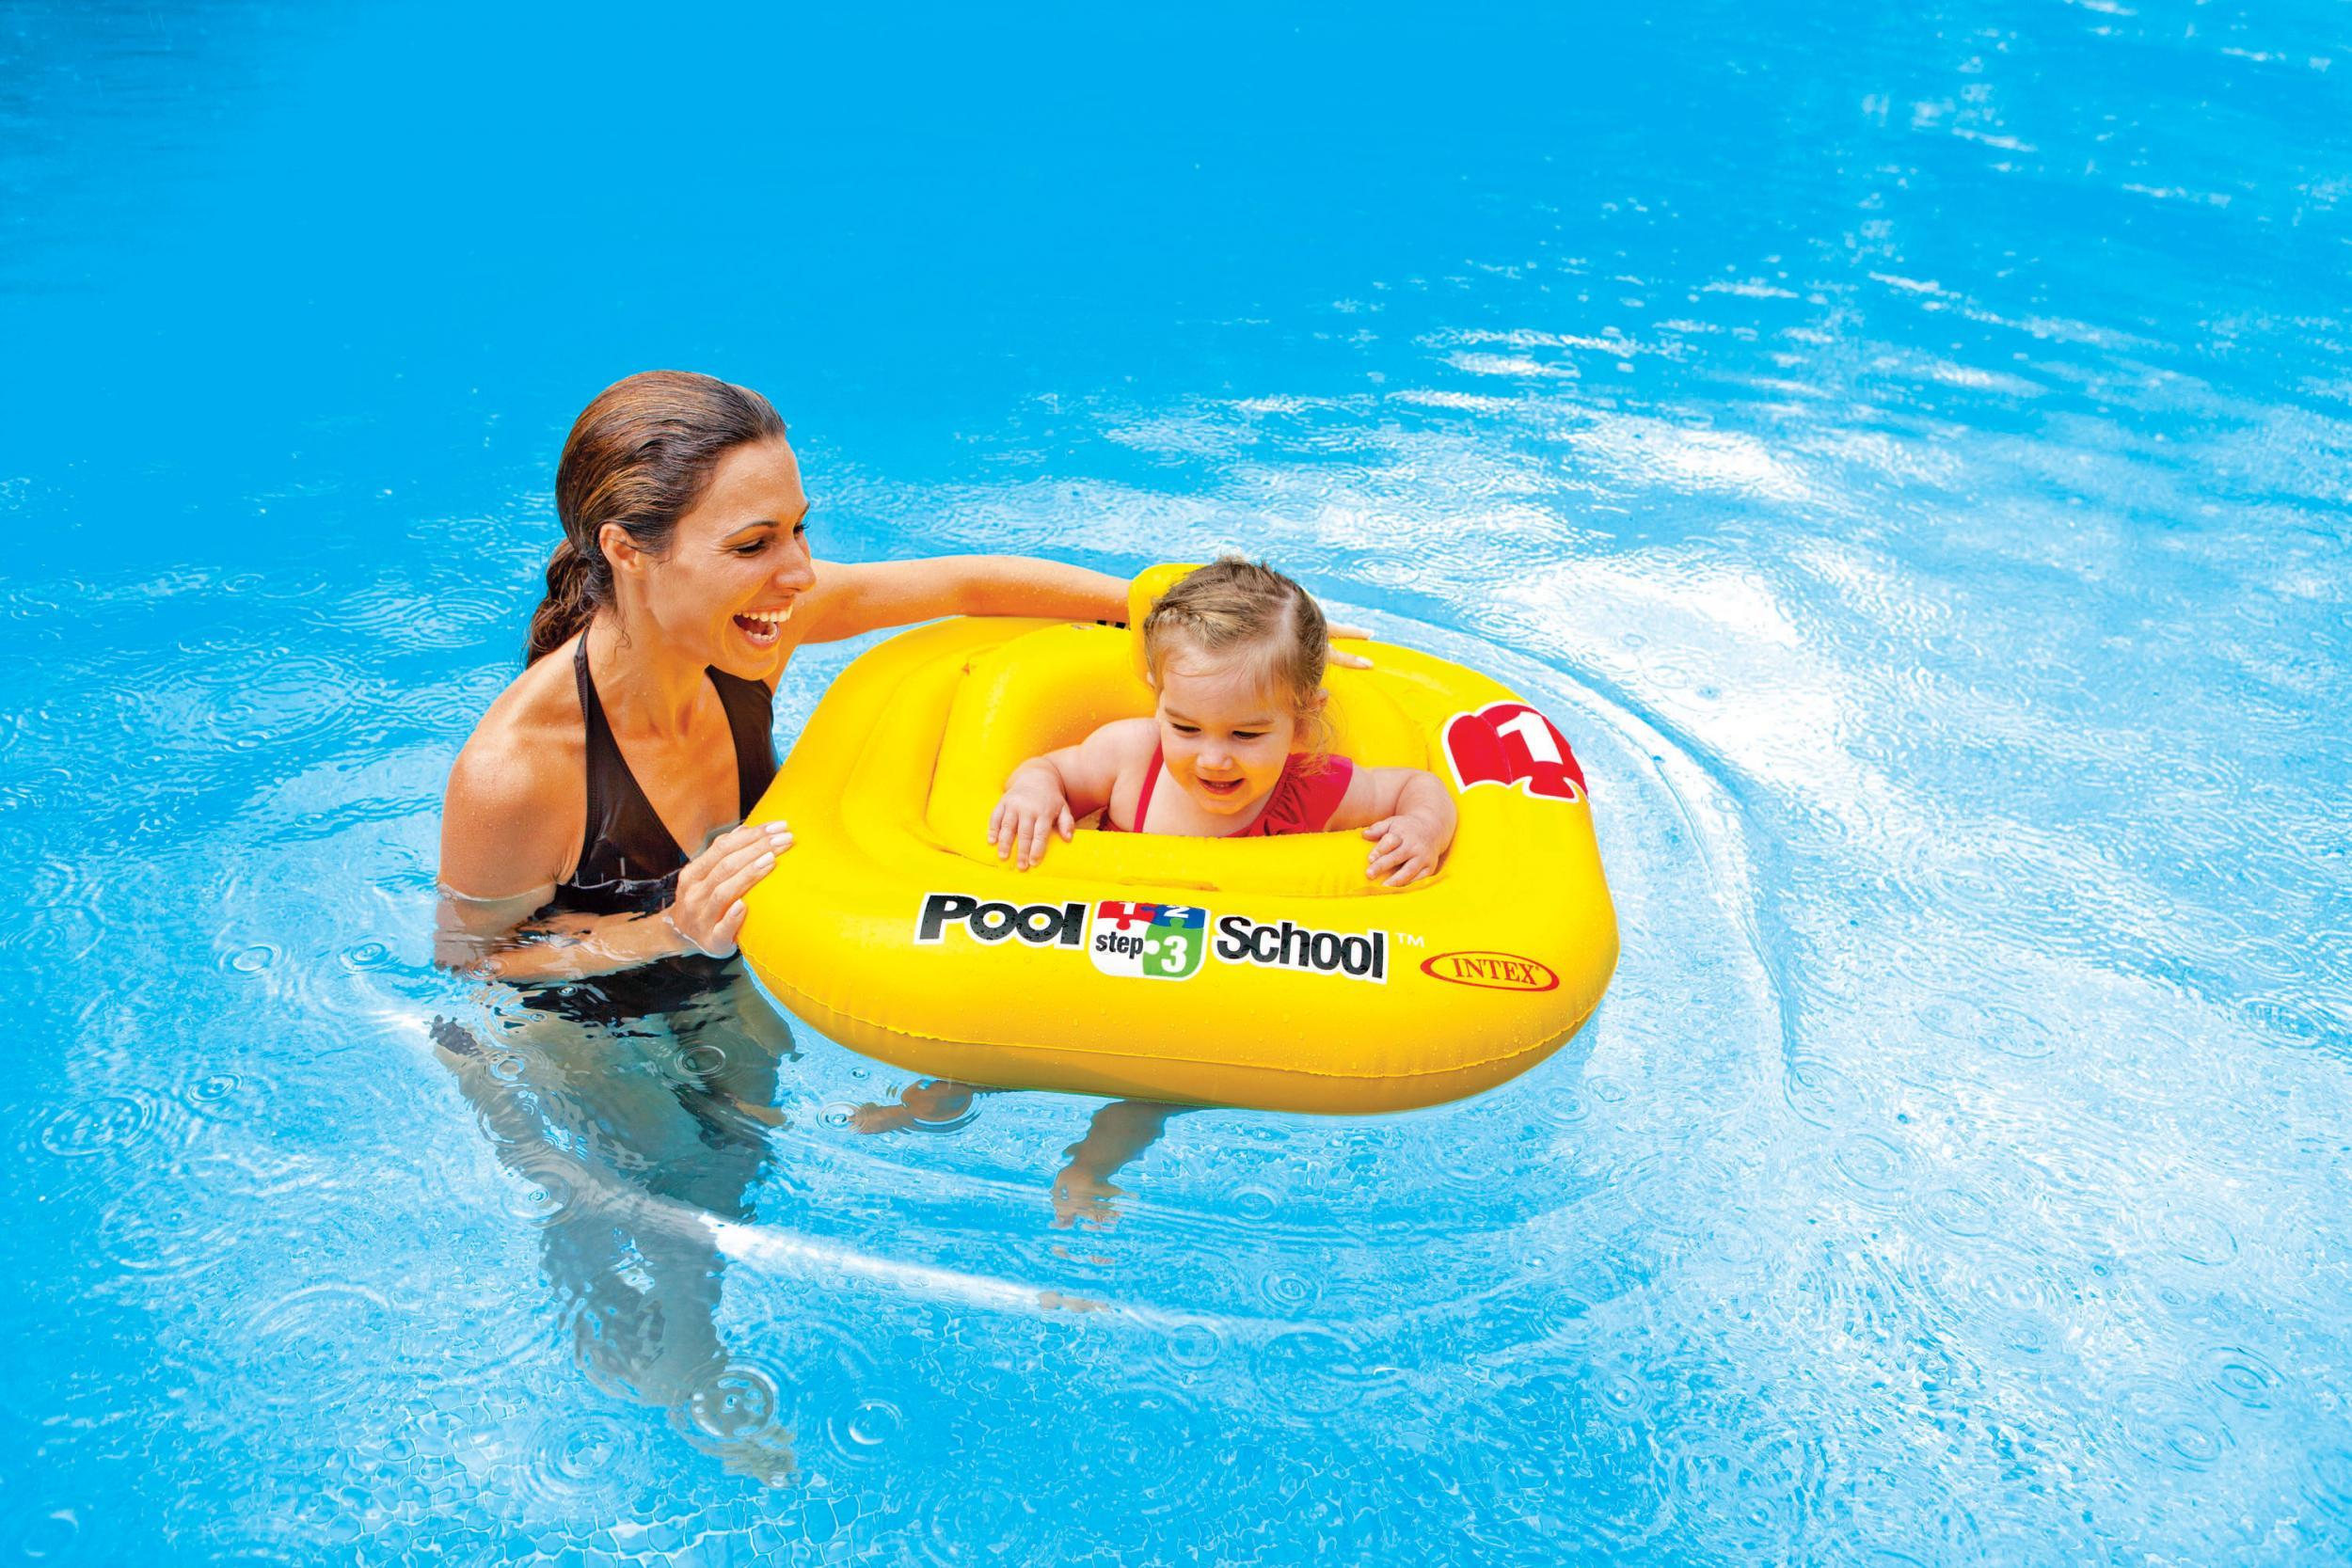 Intex Pool School Swimming Arm Bands Brand New Aged 3-6 Years